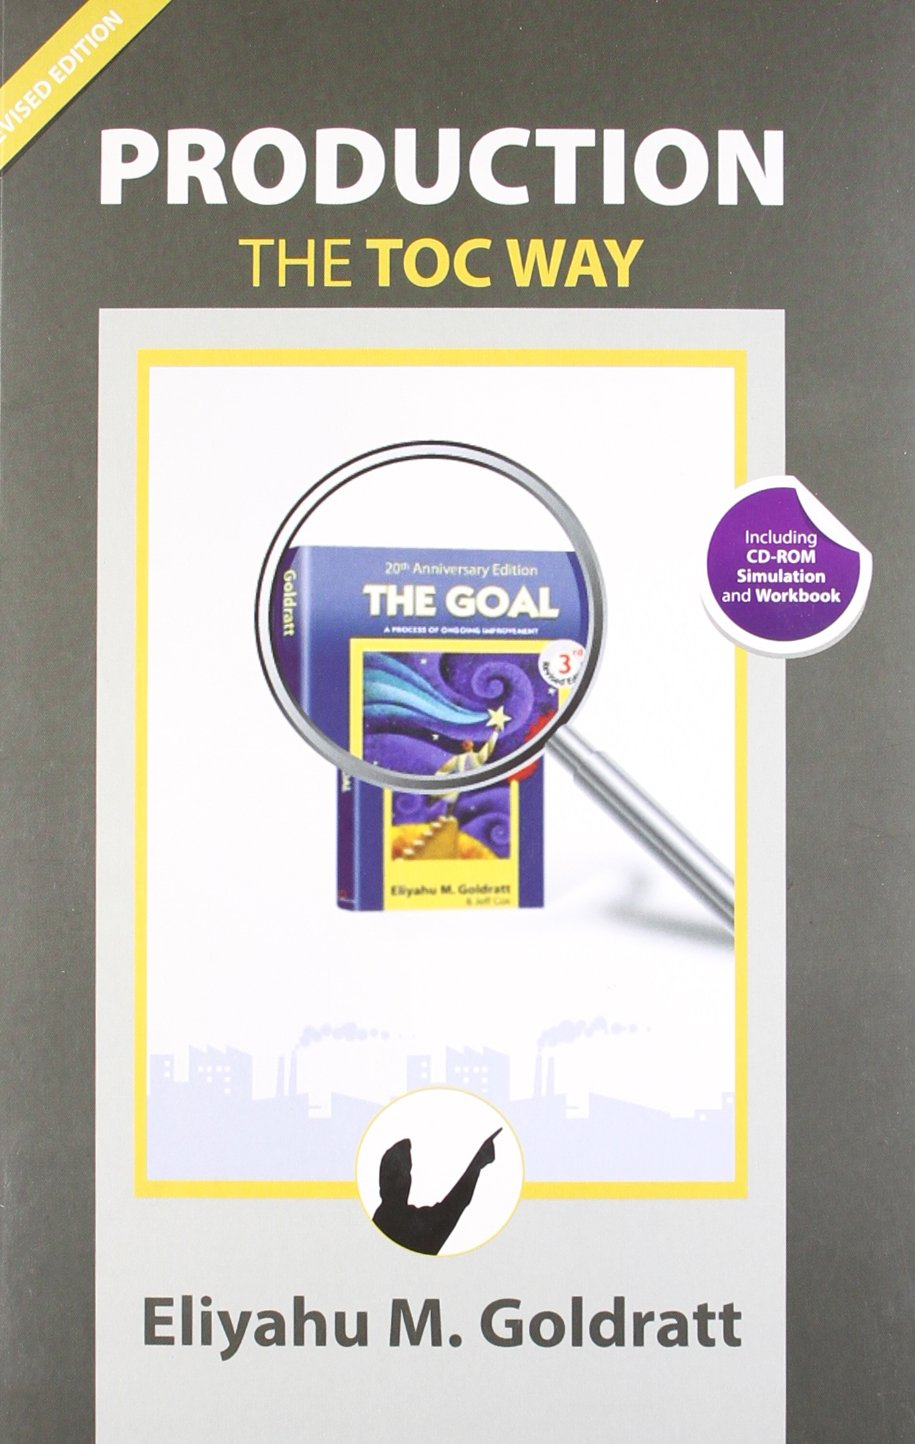 Buy Production The Toc Way Book Online At Low Prices In India  Production  The Toc Way Reviews & Ratings  Amazon